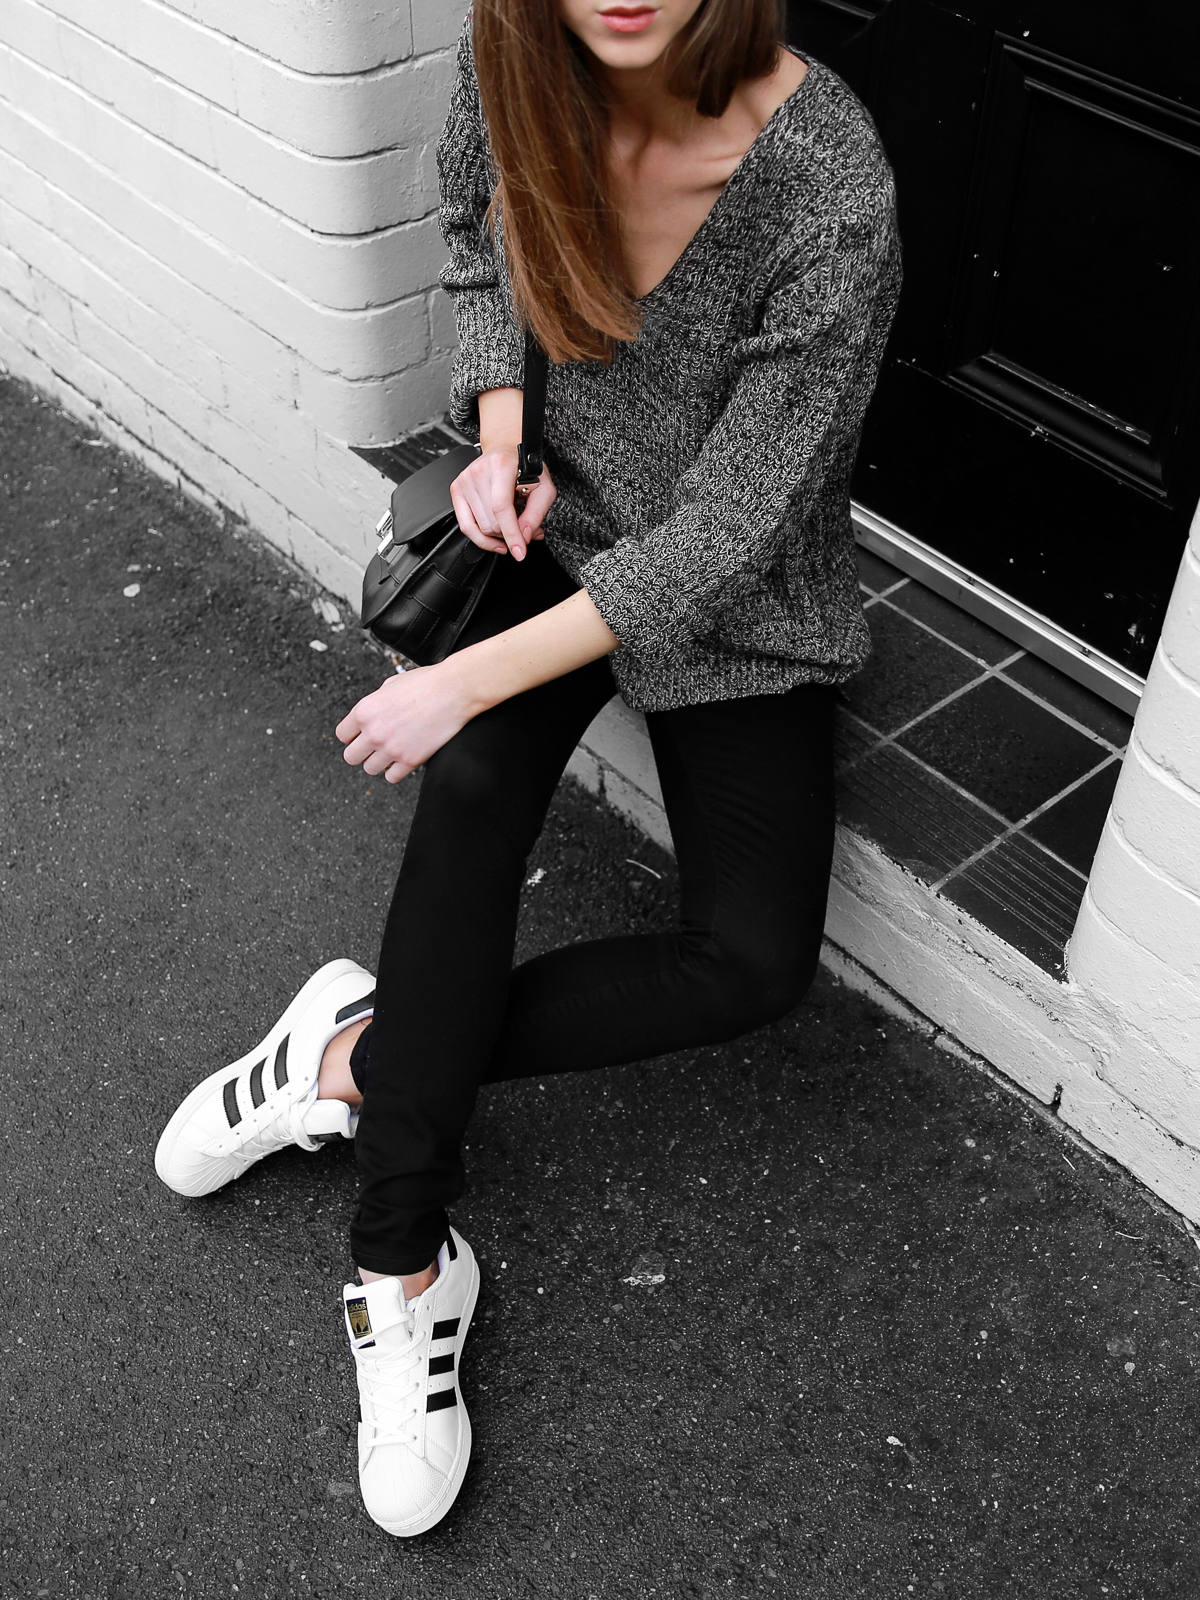 Adidas Superstar Sneakers Outfit Abrand Jeans Monochrome Blogger